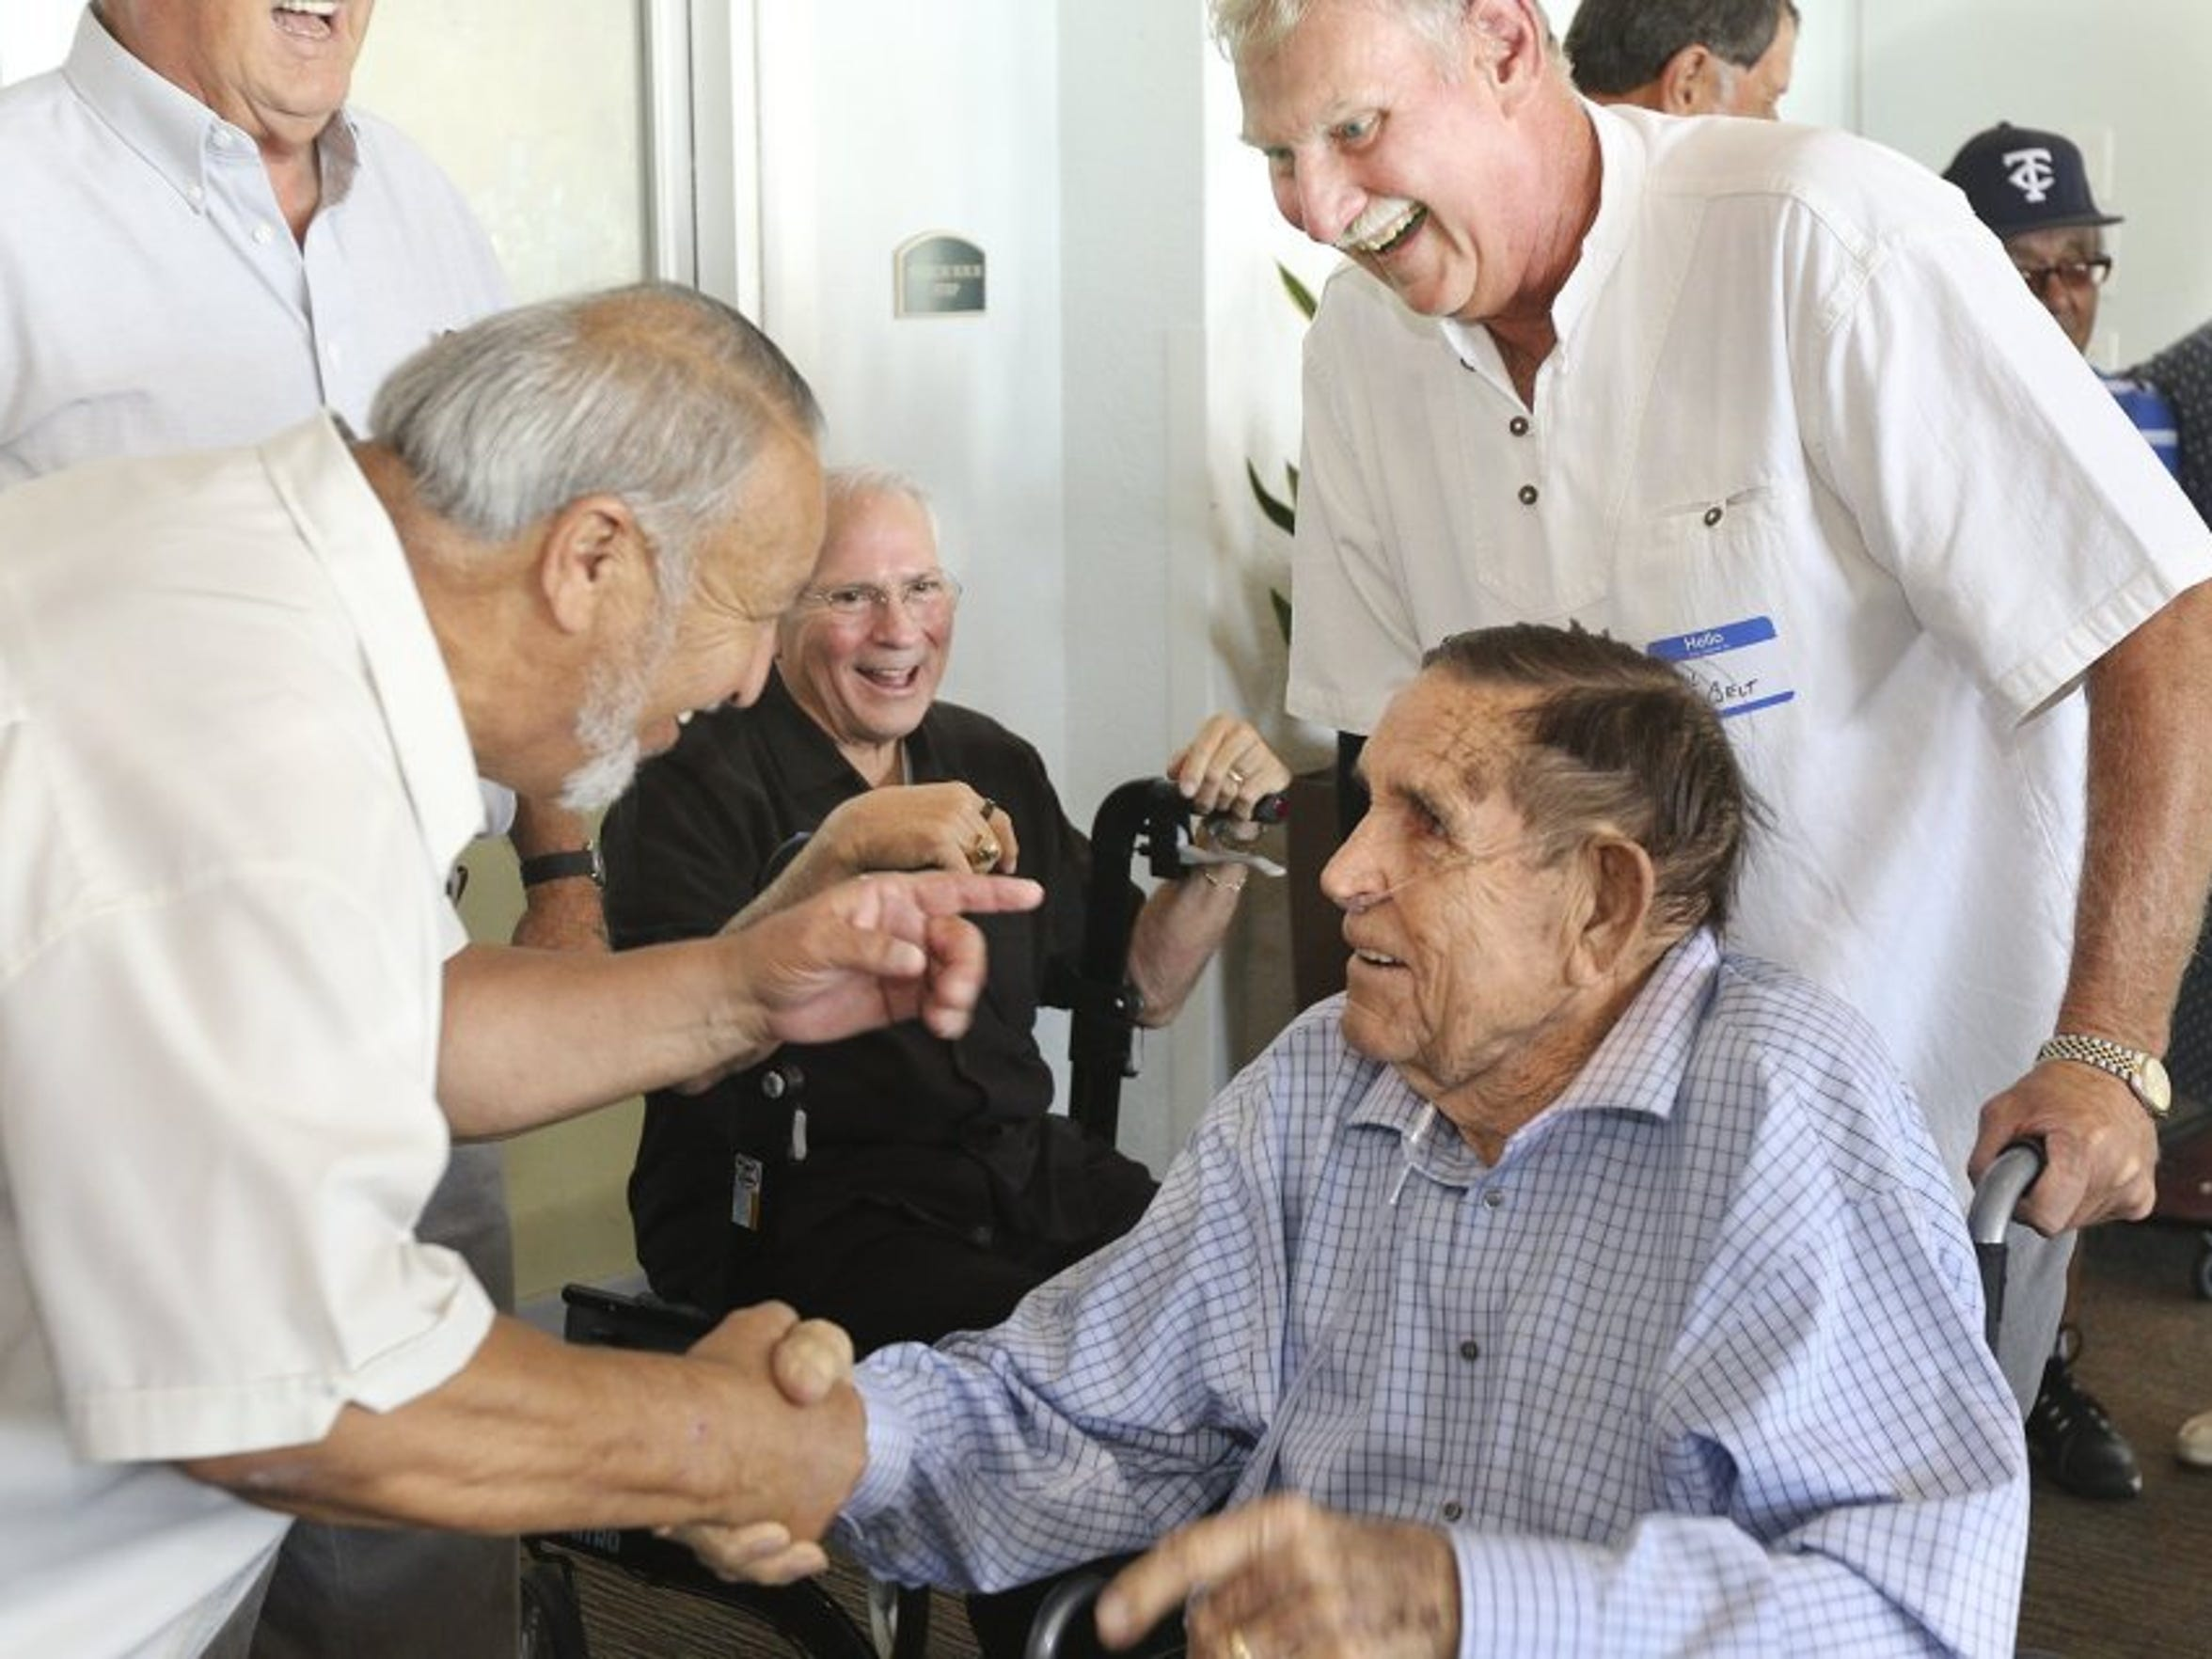 Hector Salinas (left) greets his former coach at Carroll Dave Donnan (center) with Phil Belt at right and John Saenz at the Carroll Hall of Fame ceremony in 2017. Salinas was a pitcher for the Tigers in 1962, the first time they qualified for the state baseball tournament.